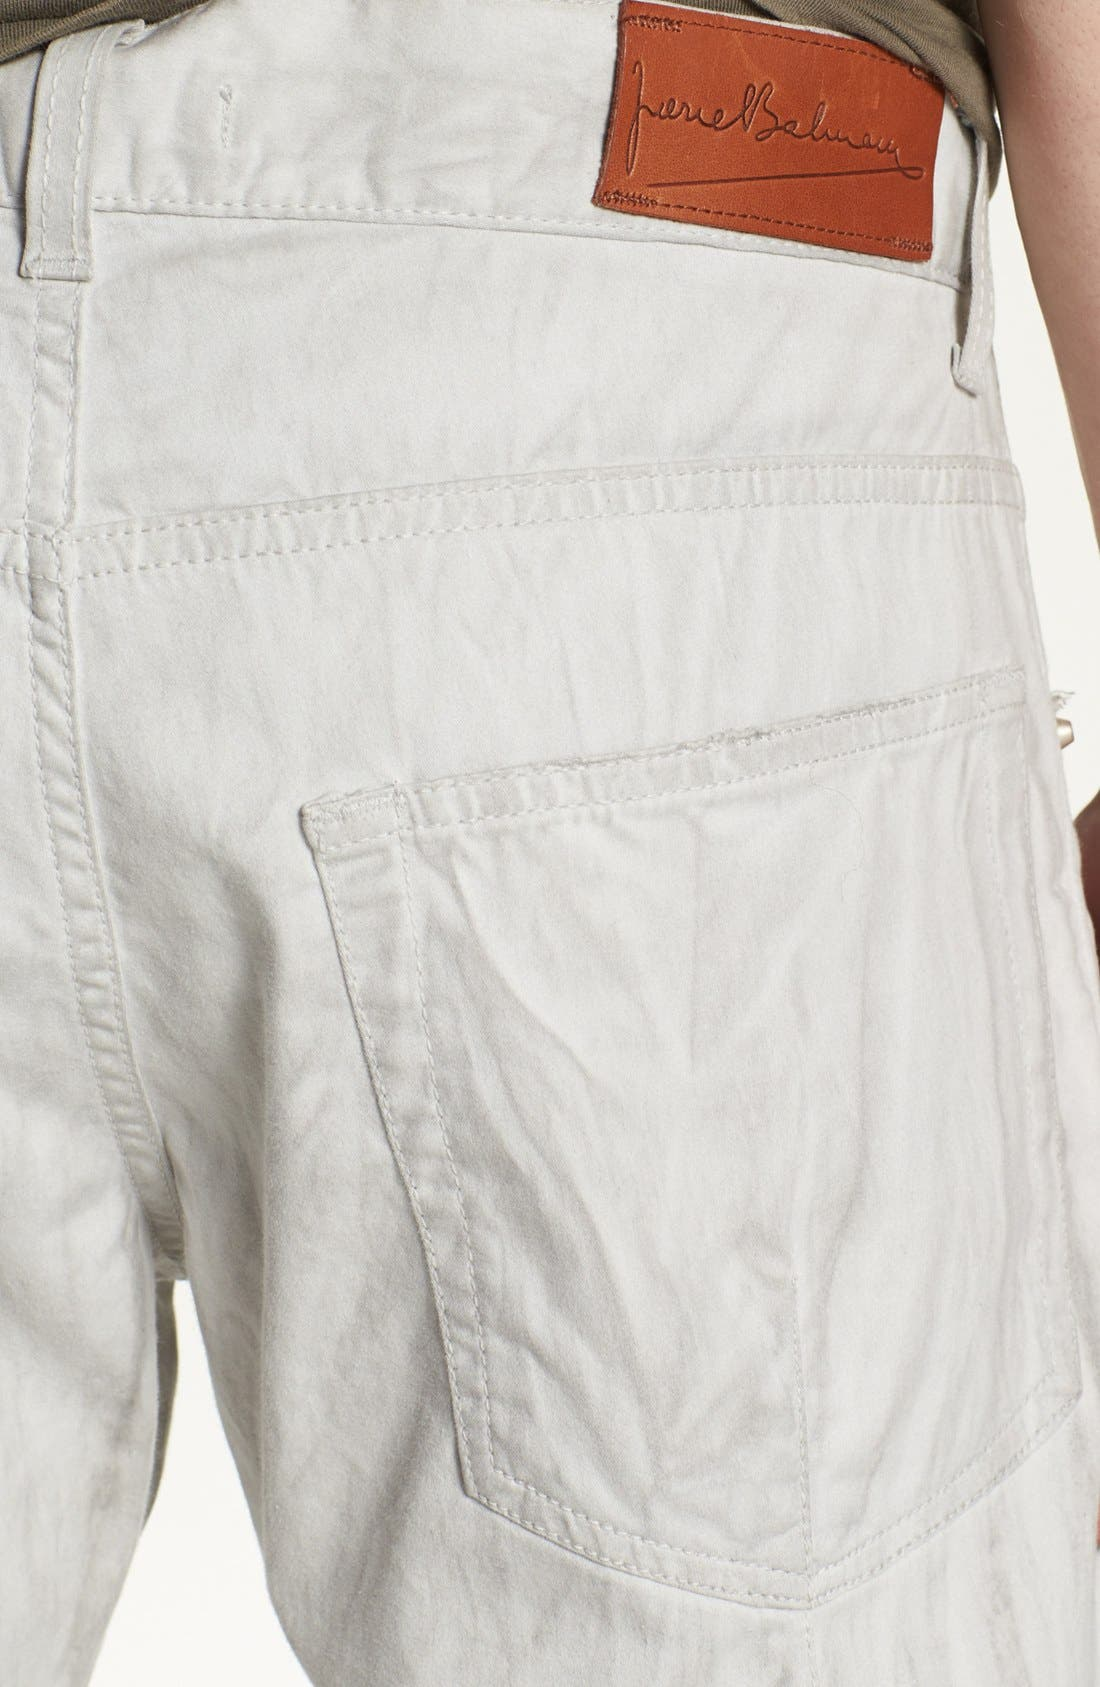 Alternate Image 4  - Pierre Balmain Slim Fit Jeans (Off White) (Online Only)